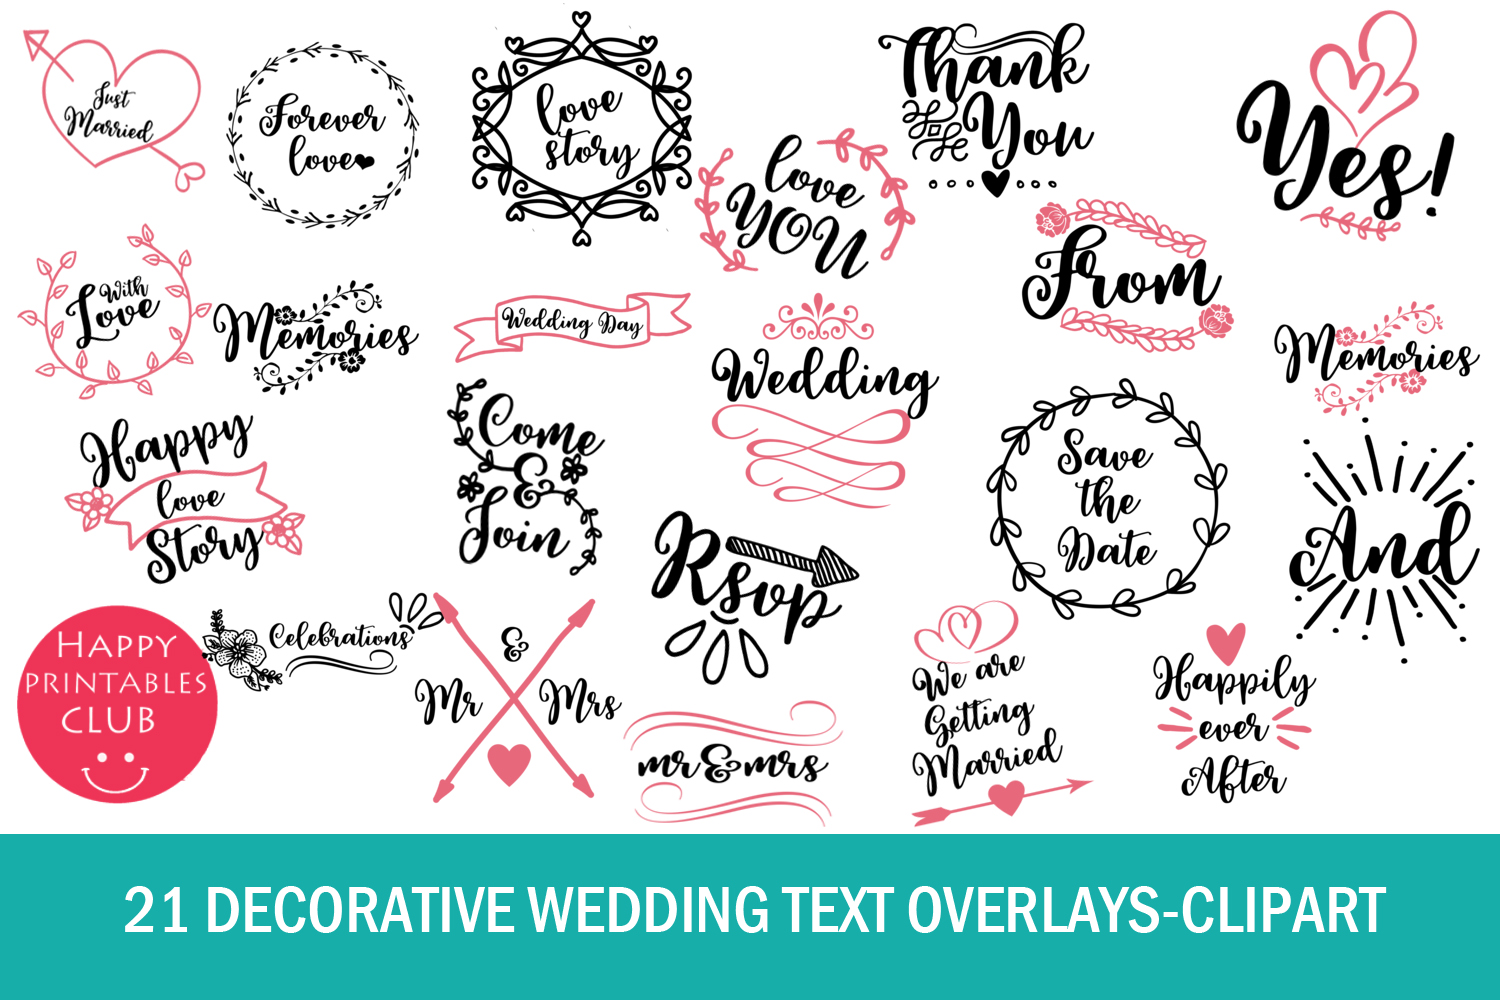 21 Decorative Wedding Text Overlays.